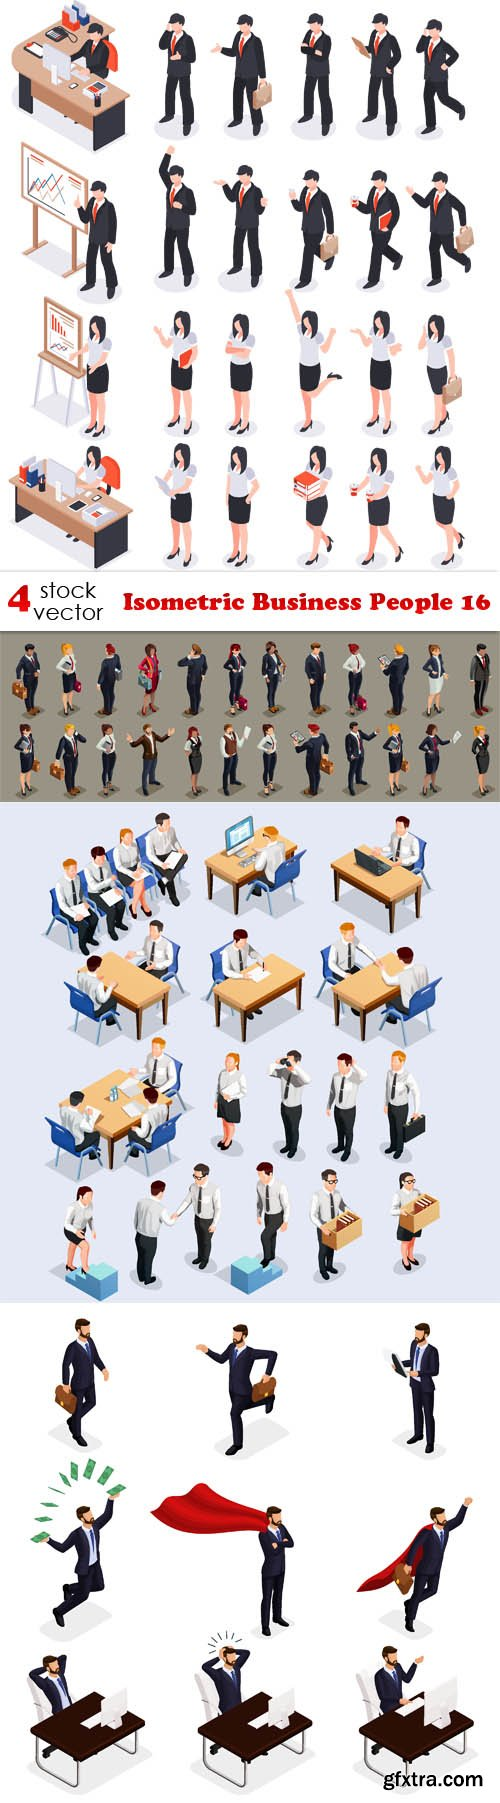 Vectors - Isometric Business People 16